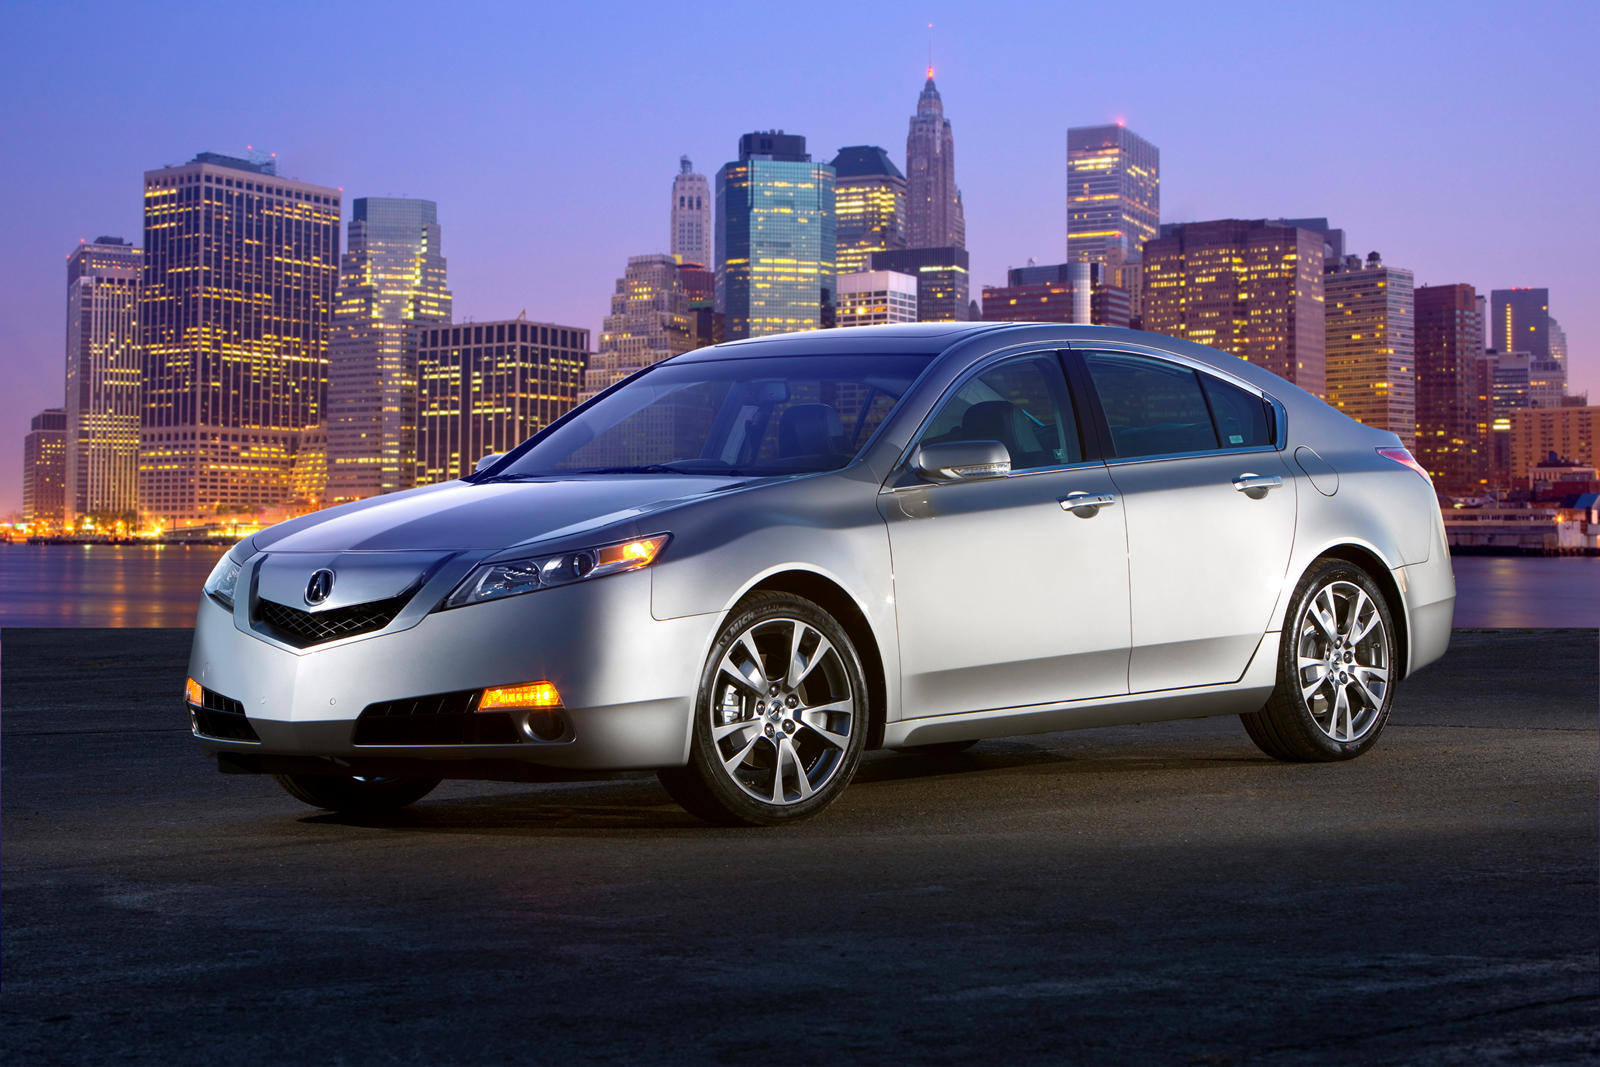 The Manual Acura Tl Is One Of The Coolest Sedans Ever Made Carbuzz